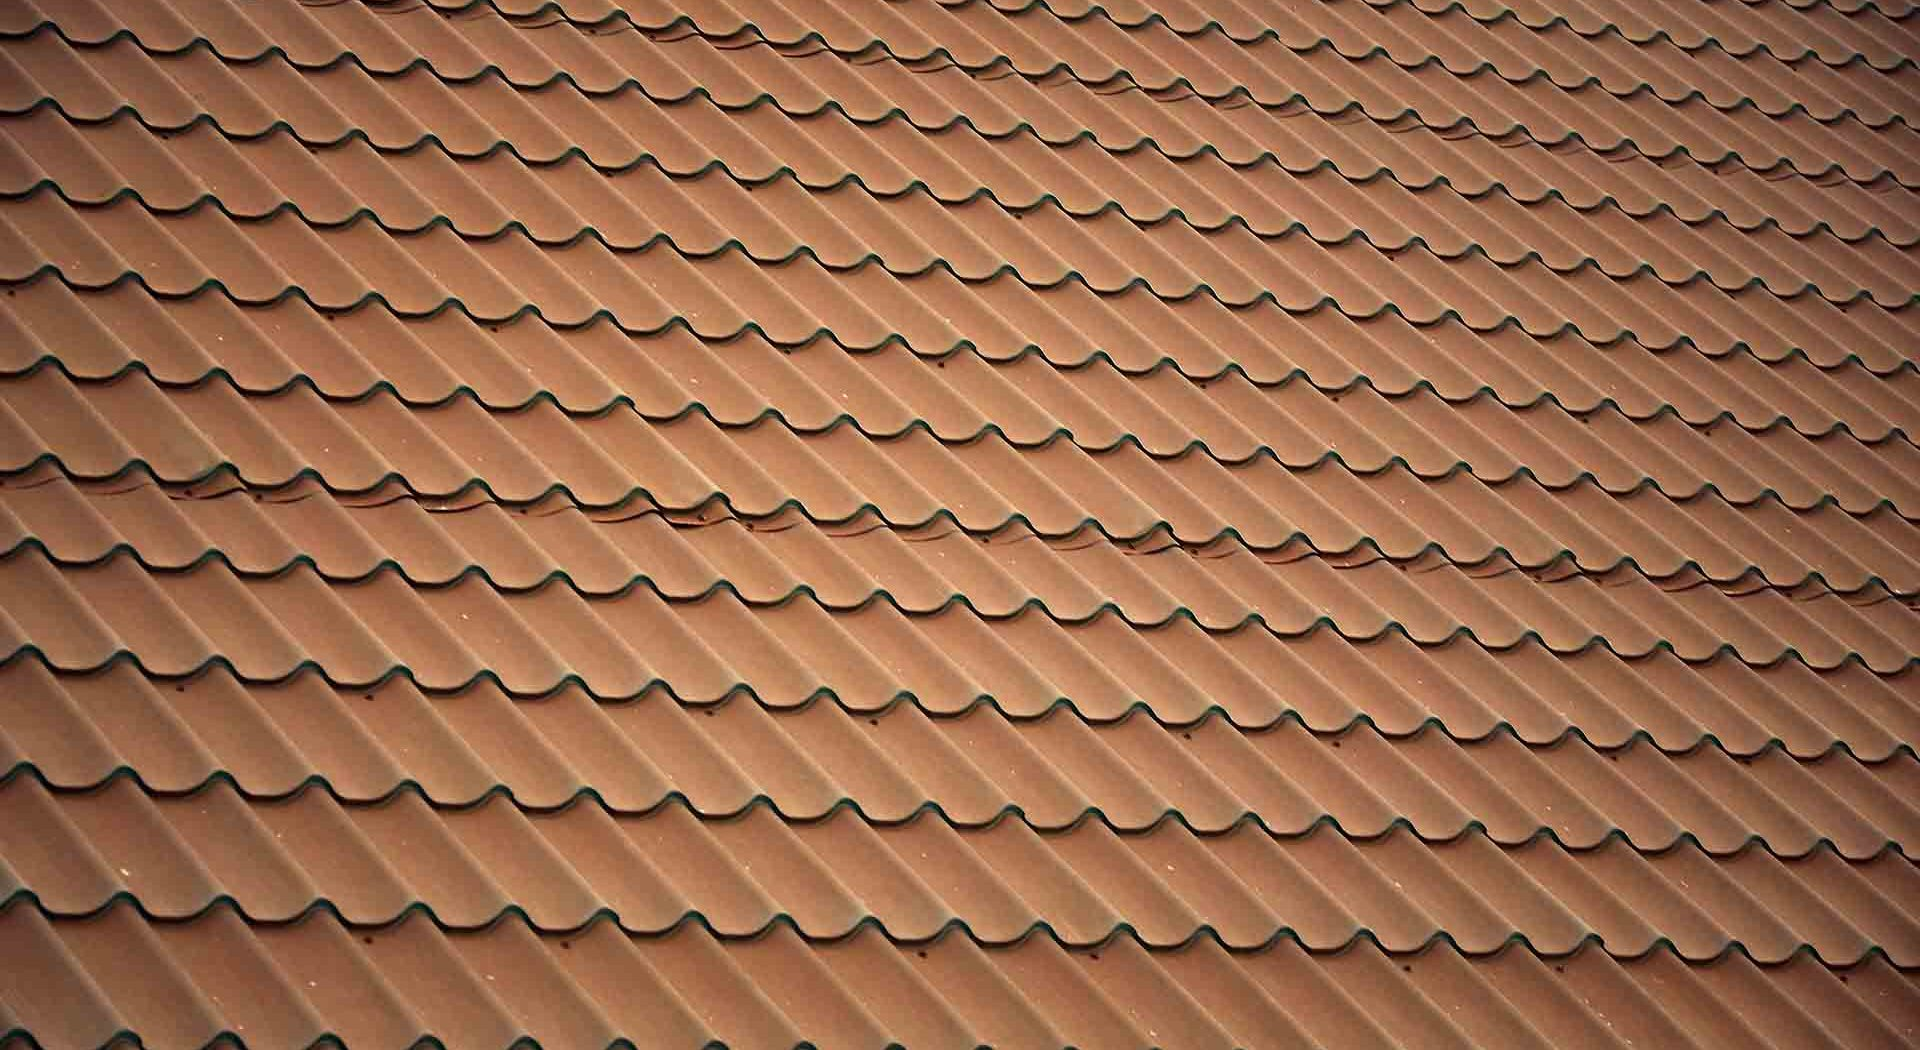 What are The Pros and Cons of a Metal Roof vs Shingles?